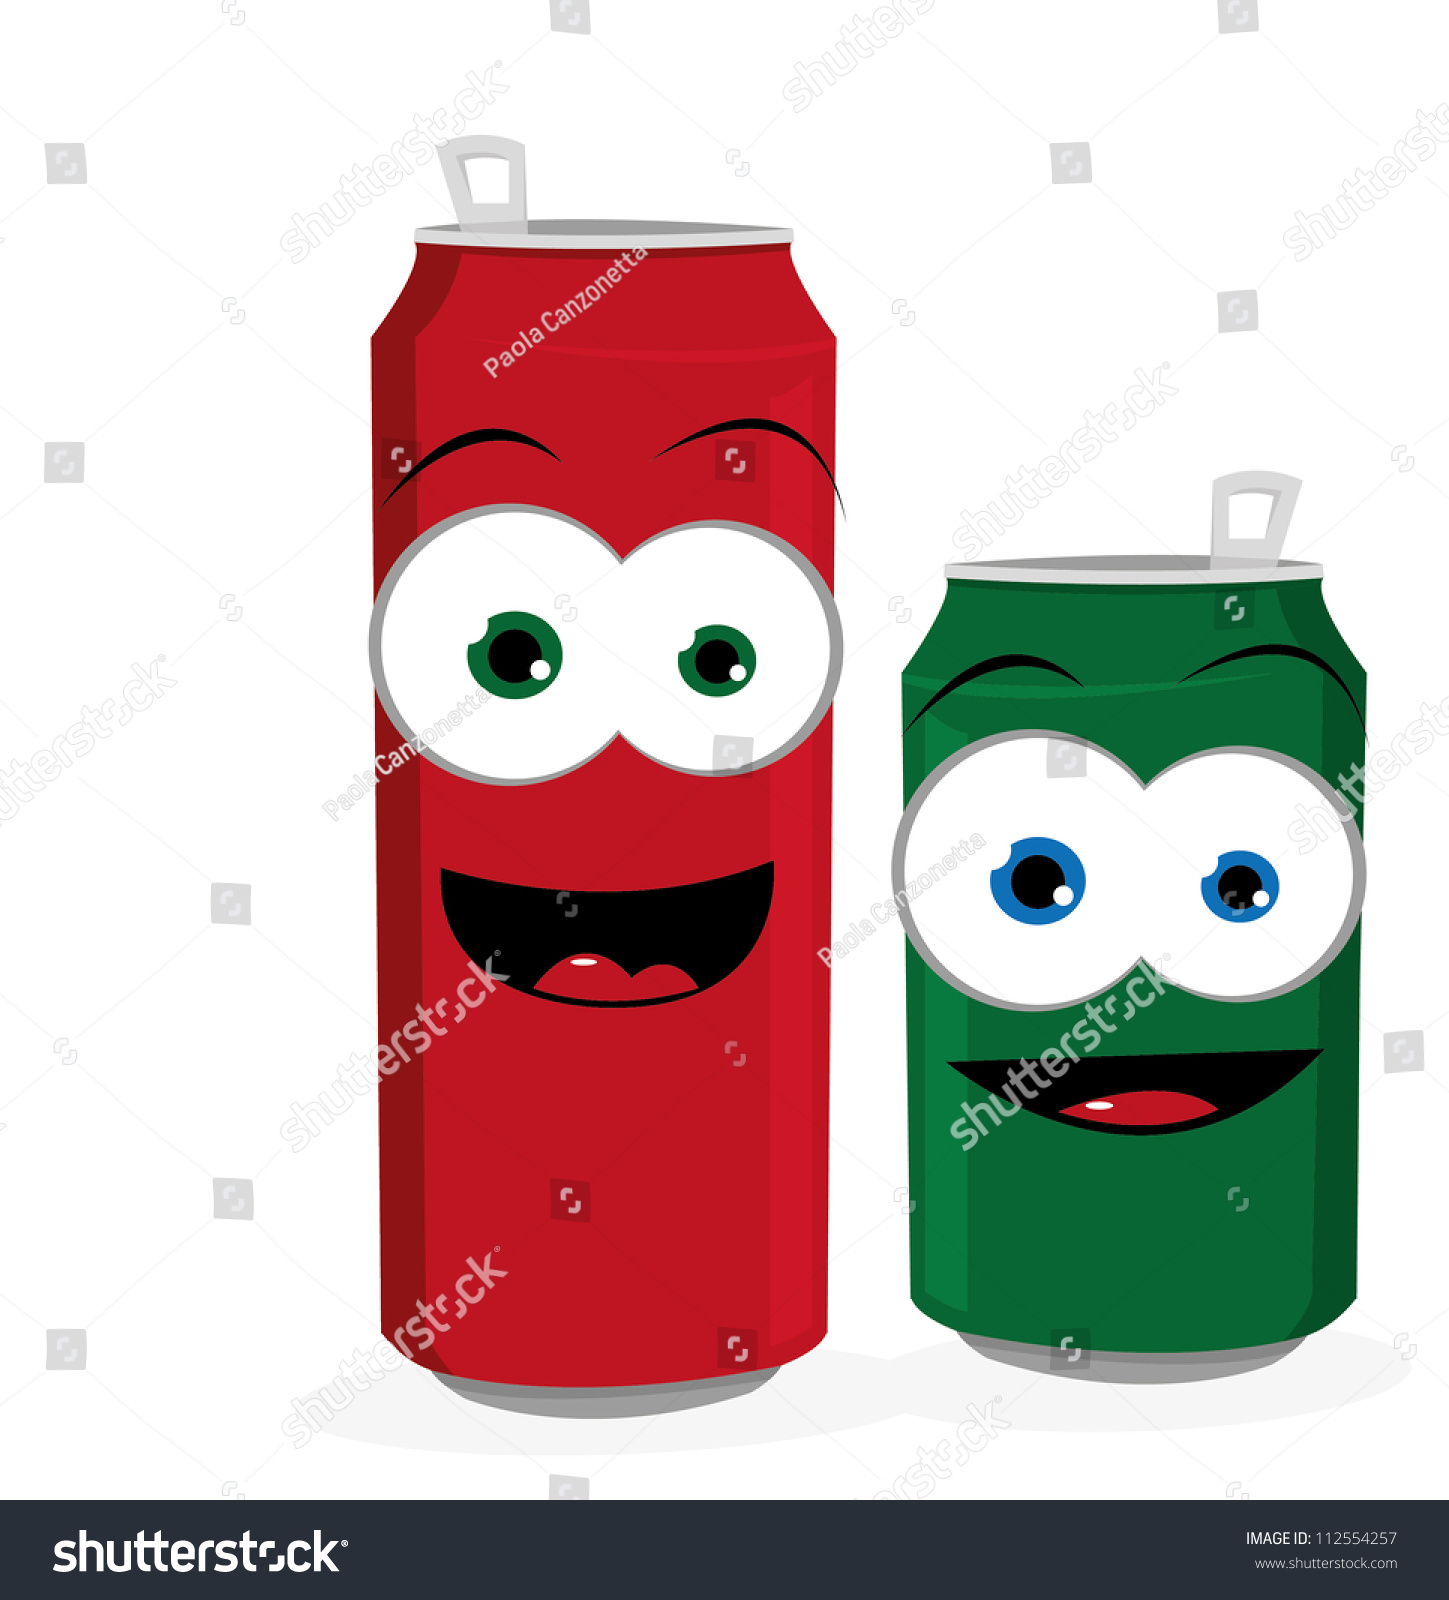 Red Soda Can With Bubbles And A Happy Smile Stock Vector - Image ...